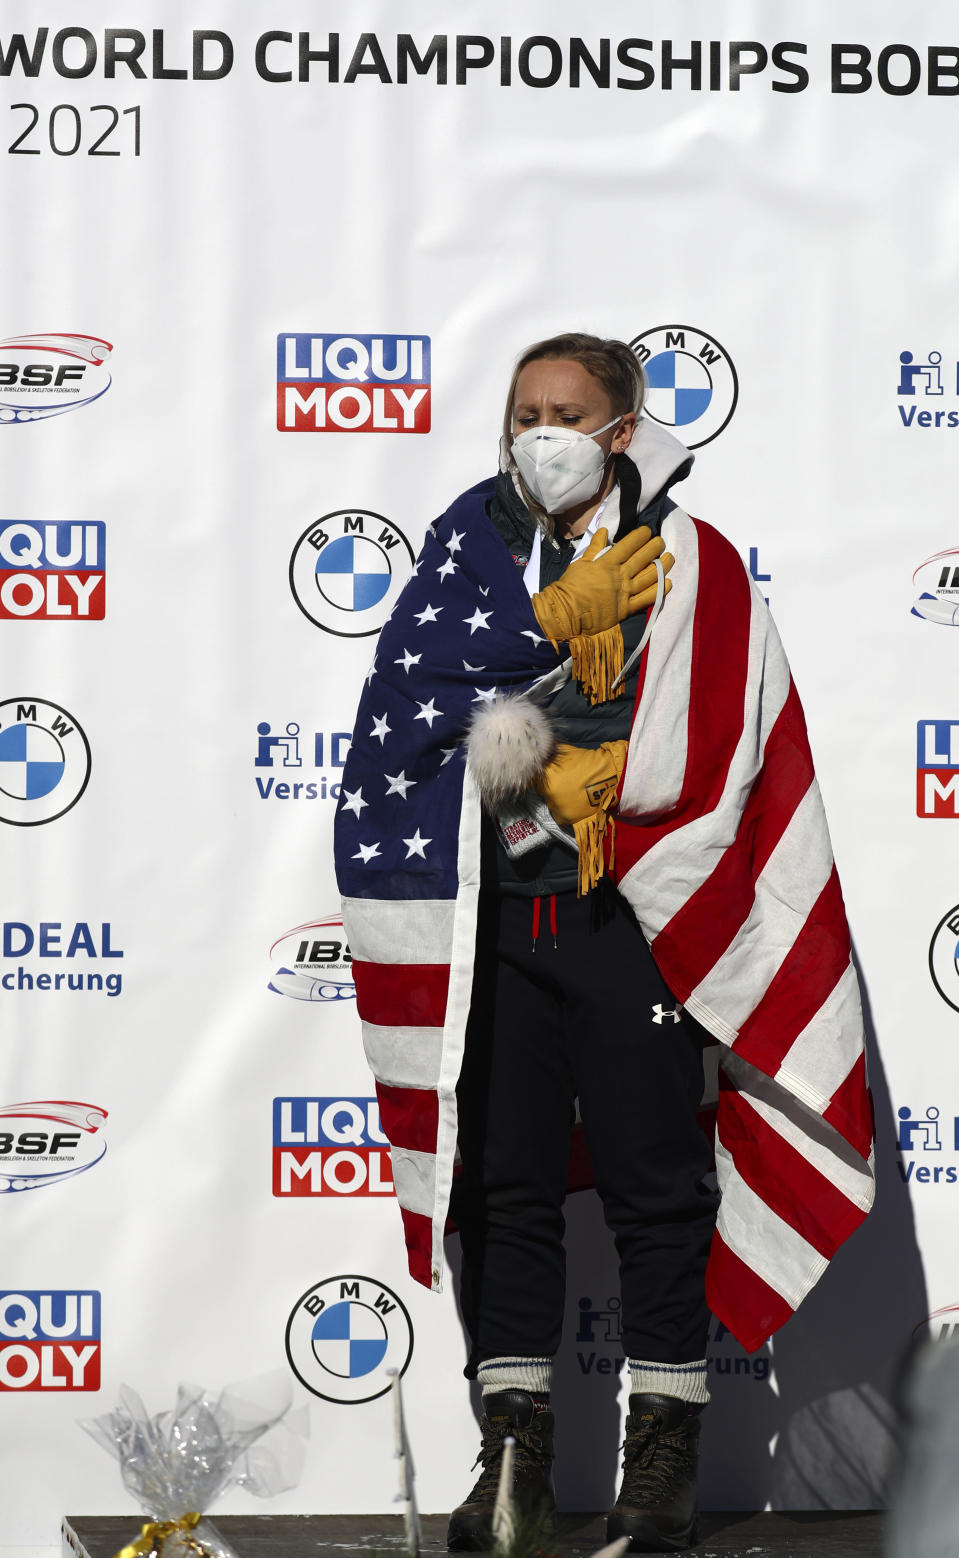 Bobsleigh pilot Kaillie Humphries of the United States stands on the podium after taking first place in the women's monobob race at the Bobsleigh and Skeleton World Championships in Altenberg, Germany, Sunday, Feb.14, 2021. (AP Photo/Matthias Schrader)